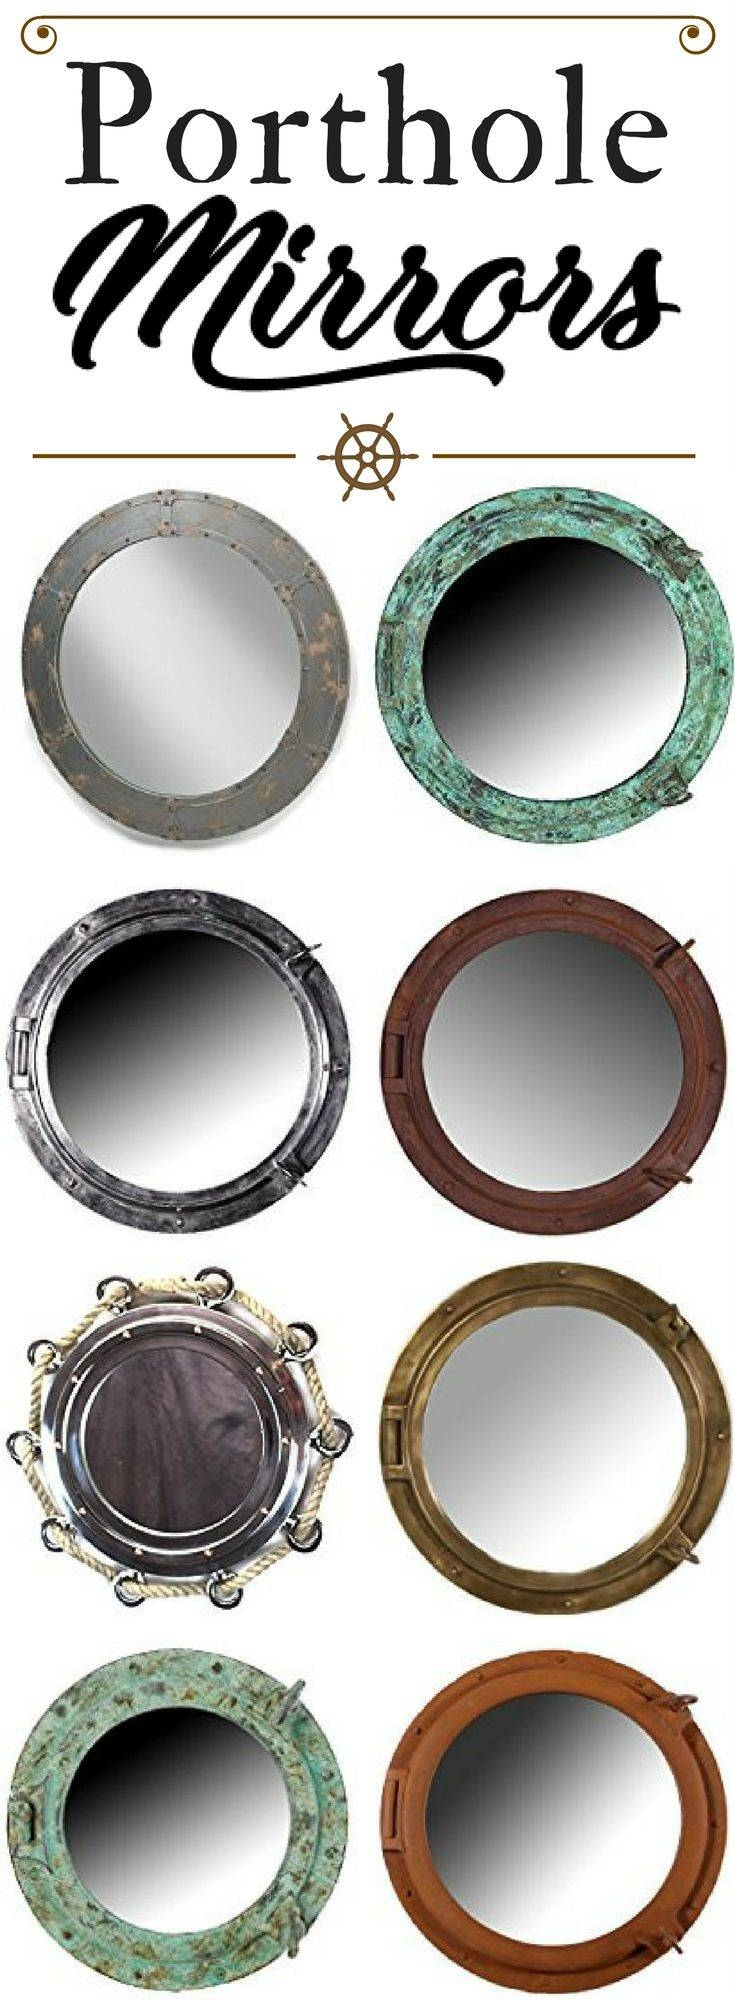 25+ Best Porthole Mirror Ideas On Pinterest | Nautical Mirror within Porthole Style Mirrors (Image 2 of 25)